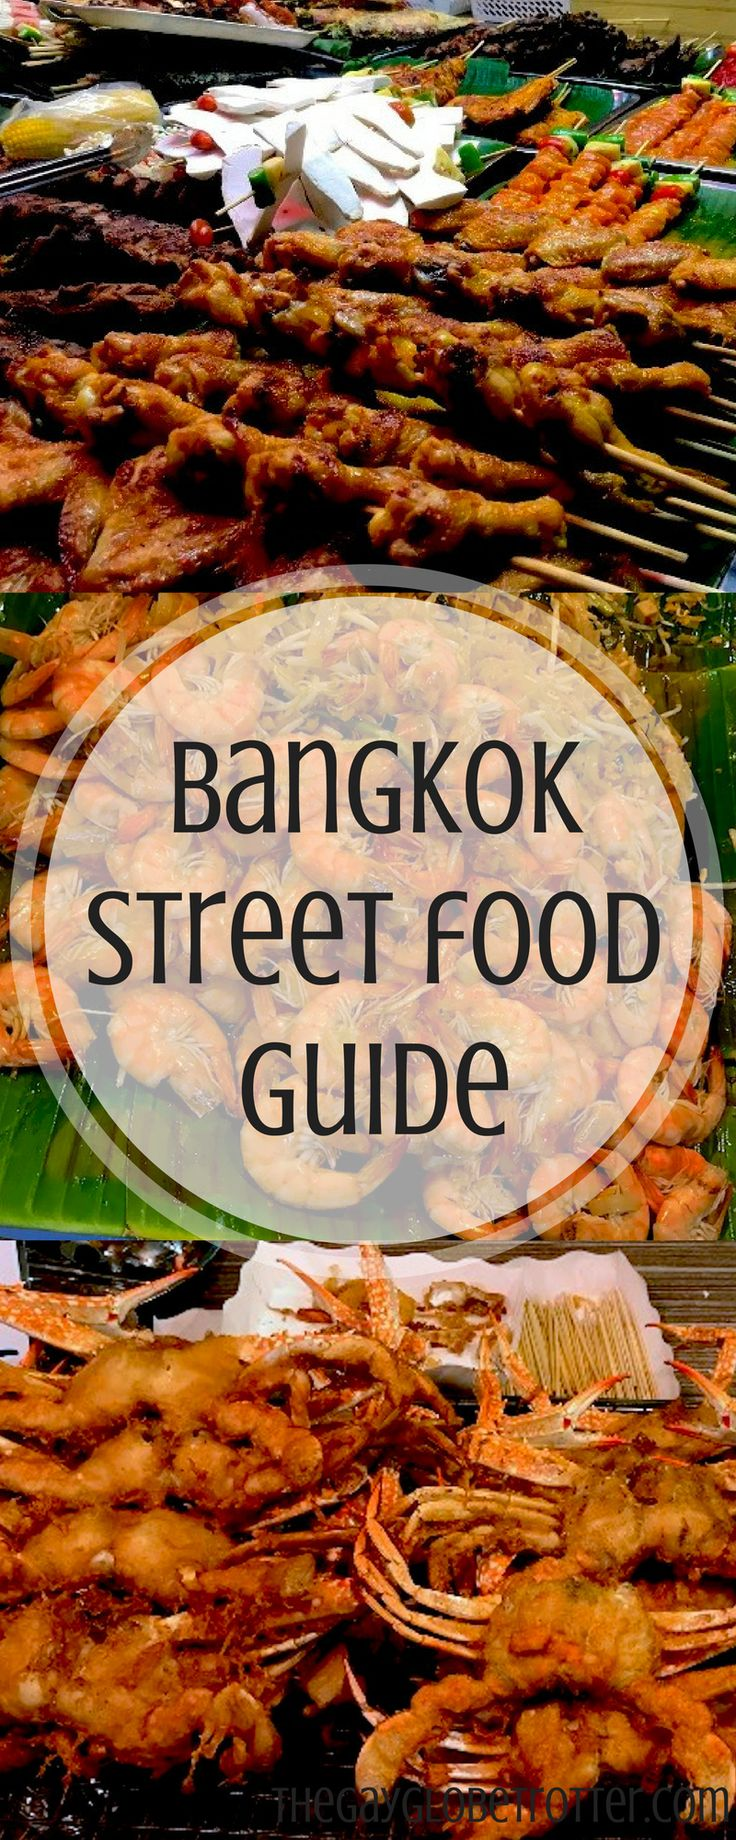 Join me as I travel through the Thailand Food scene. I've listed my favorite Thailand street food markets in Bangkok! Make sure you check them out when you travel in Bangkok